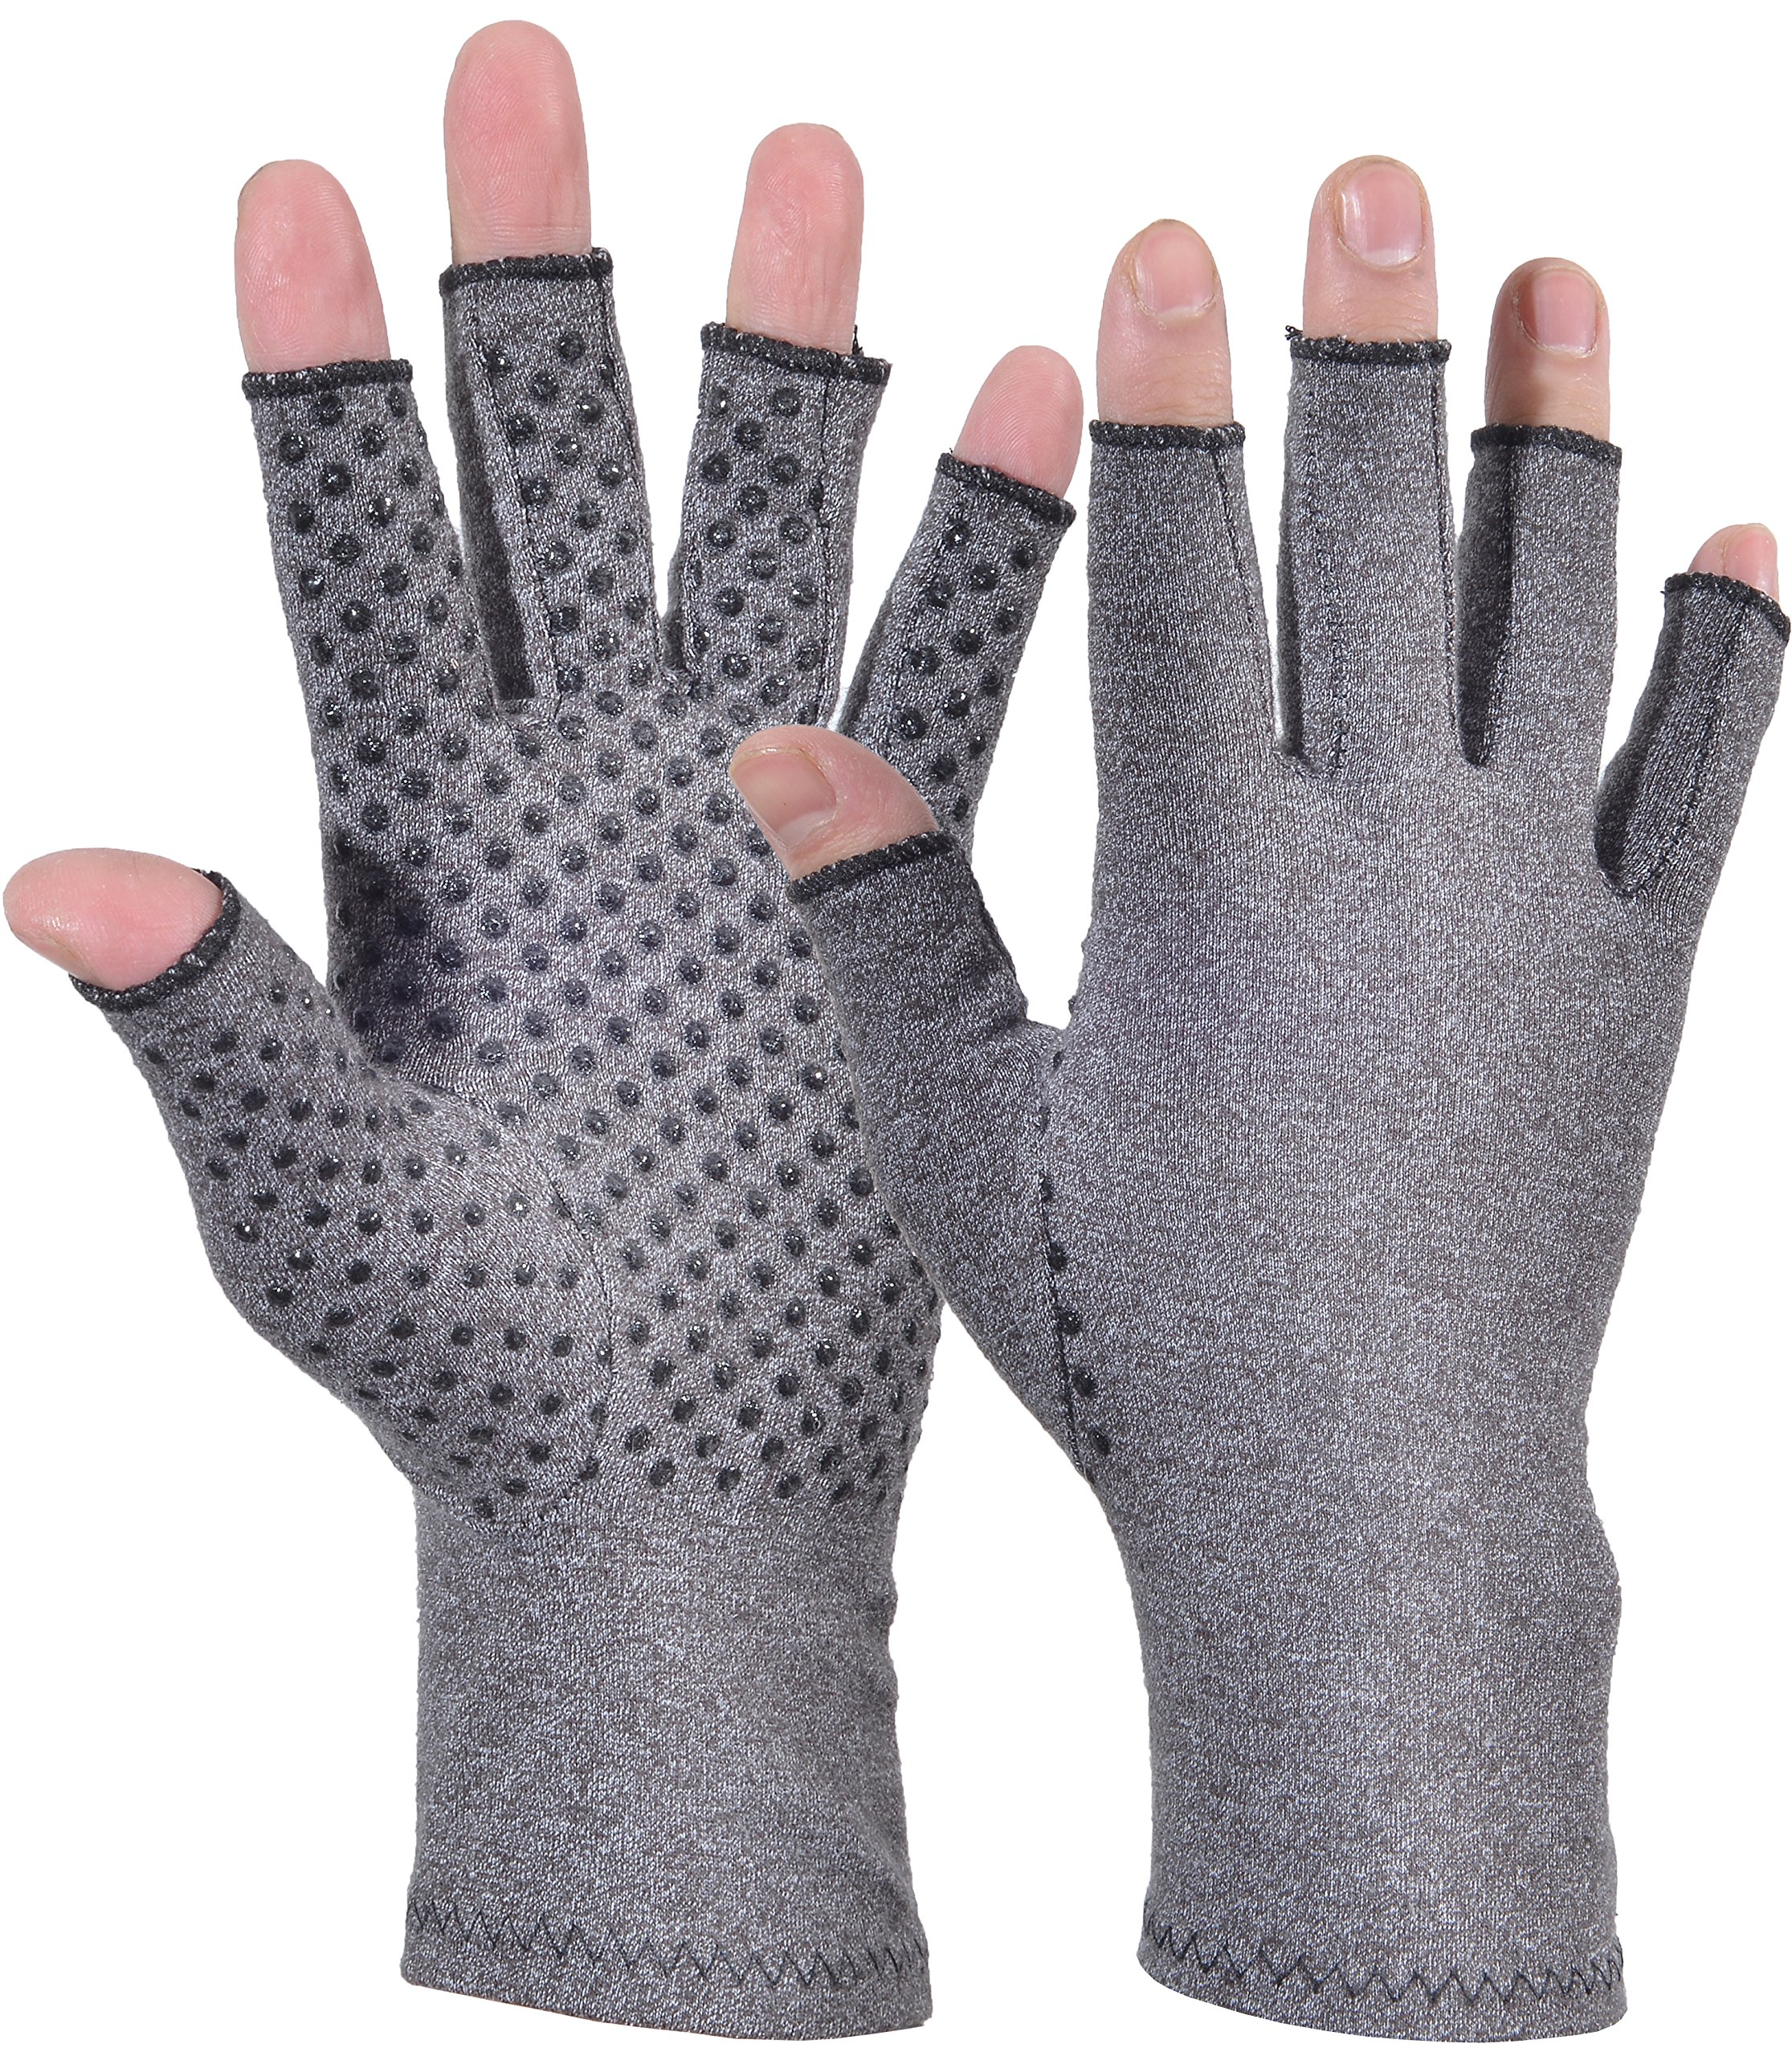 Woogwin Arthritis Compression Gloves - Open Gloves for Relief of Rheumatoid & Osteoarthritis Joint Pain, Fingerlss Hand Non-Slip Gloves for Typing Computer and Daily Work for Men & Women (Gray, L)